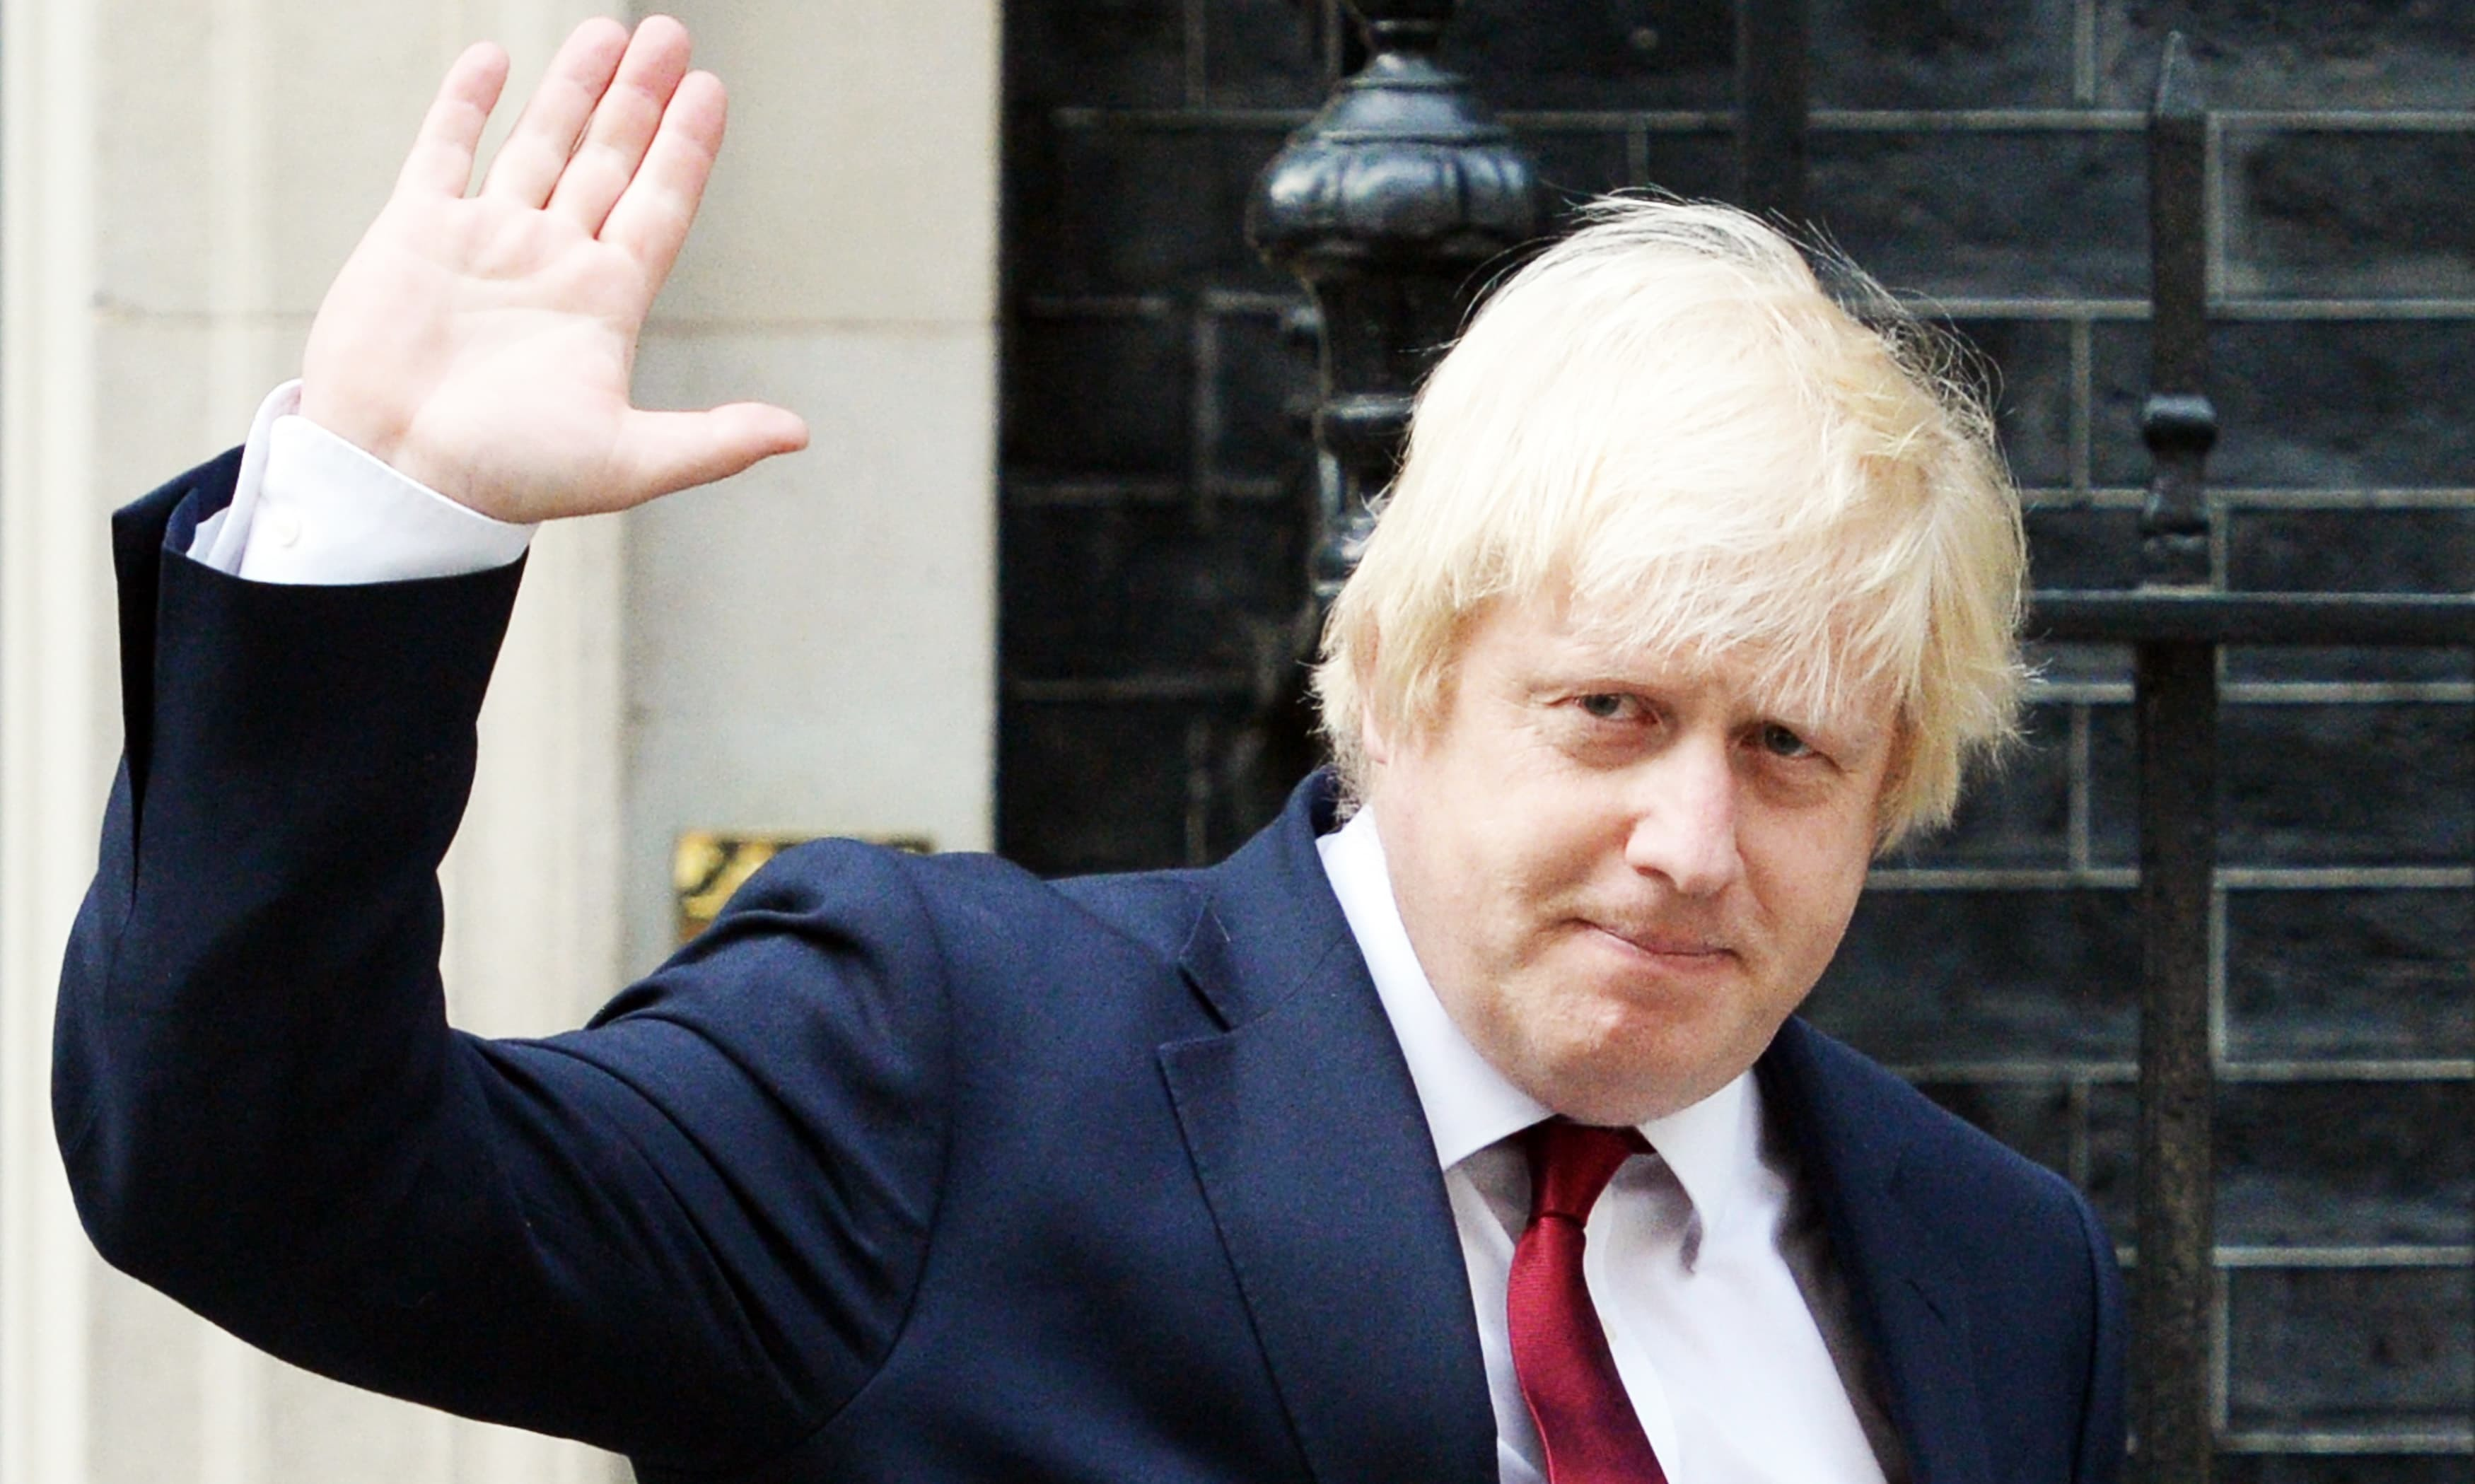 (FILES) In this file photo taken on July 13, 2016 Newly appointed Foreign Secretary Boris Johnson waves as he leaves 10 Downing Street in central Londonafter new British Prime Minister Theresa May took office.  British Foreign Secretary Boris Johnson has resigned, Downing Street said in a statement on July 9, 2018, hours after Brexit minister David Davis stepped down. / AFP PHOTO / OLI SCARFF — AFP or licensors